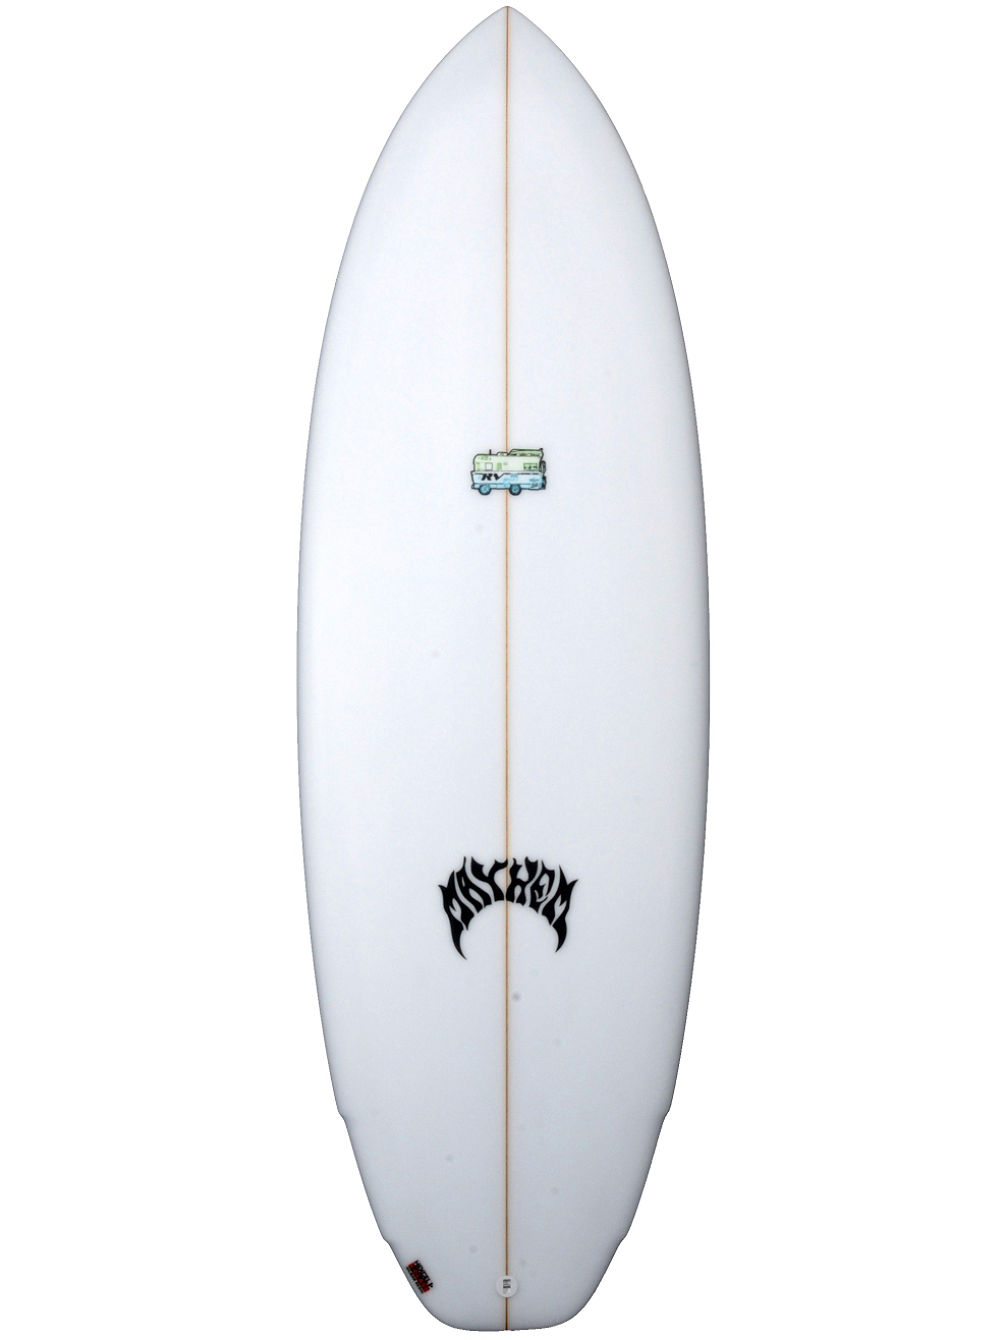 RV 5'10 Surfboard